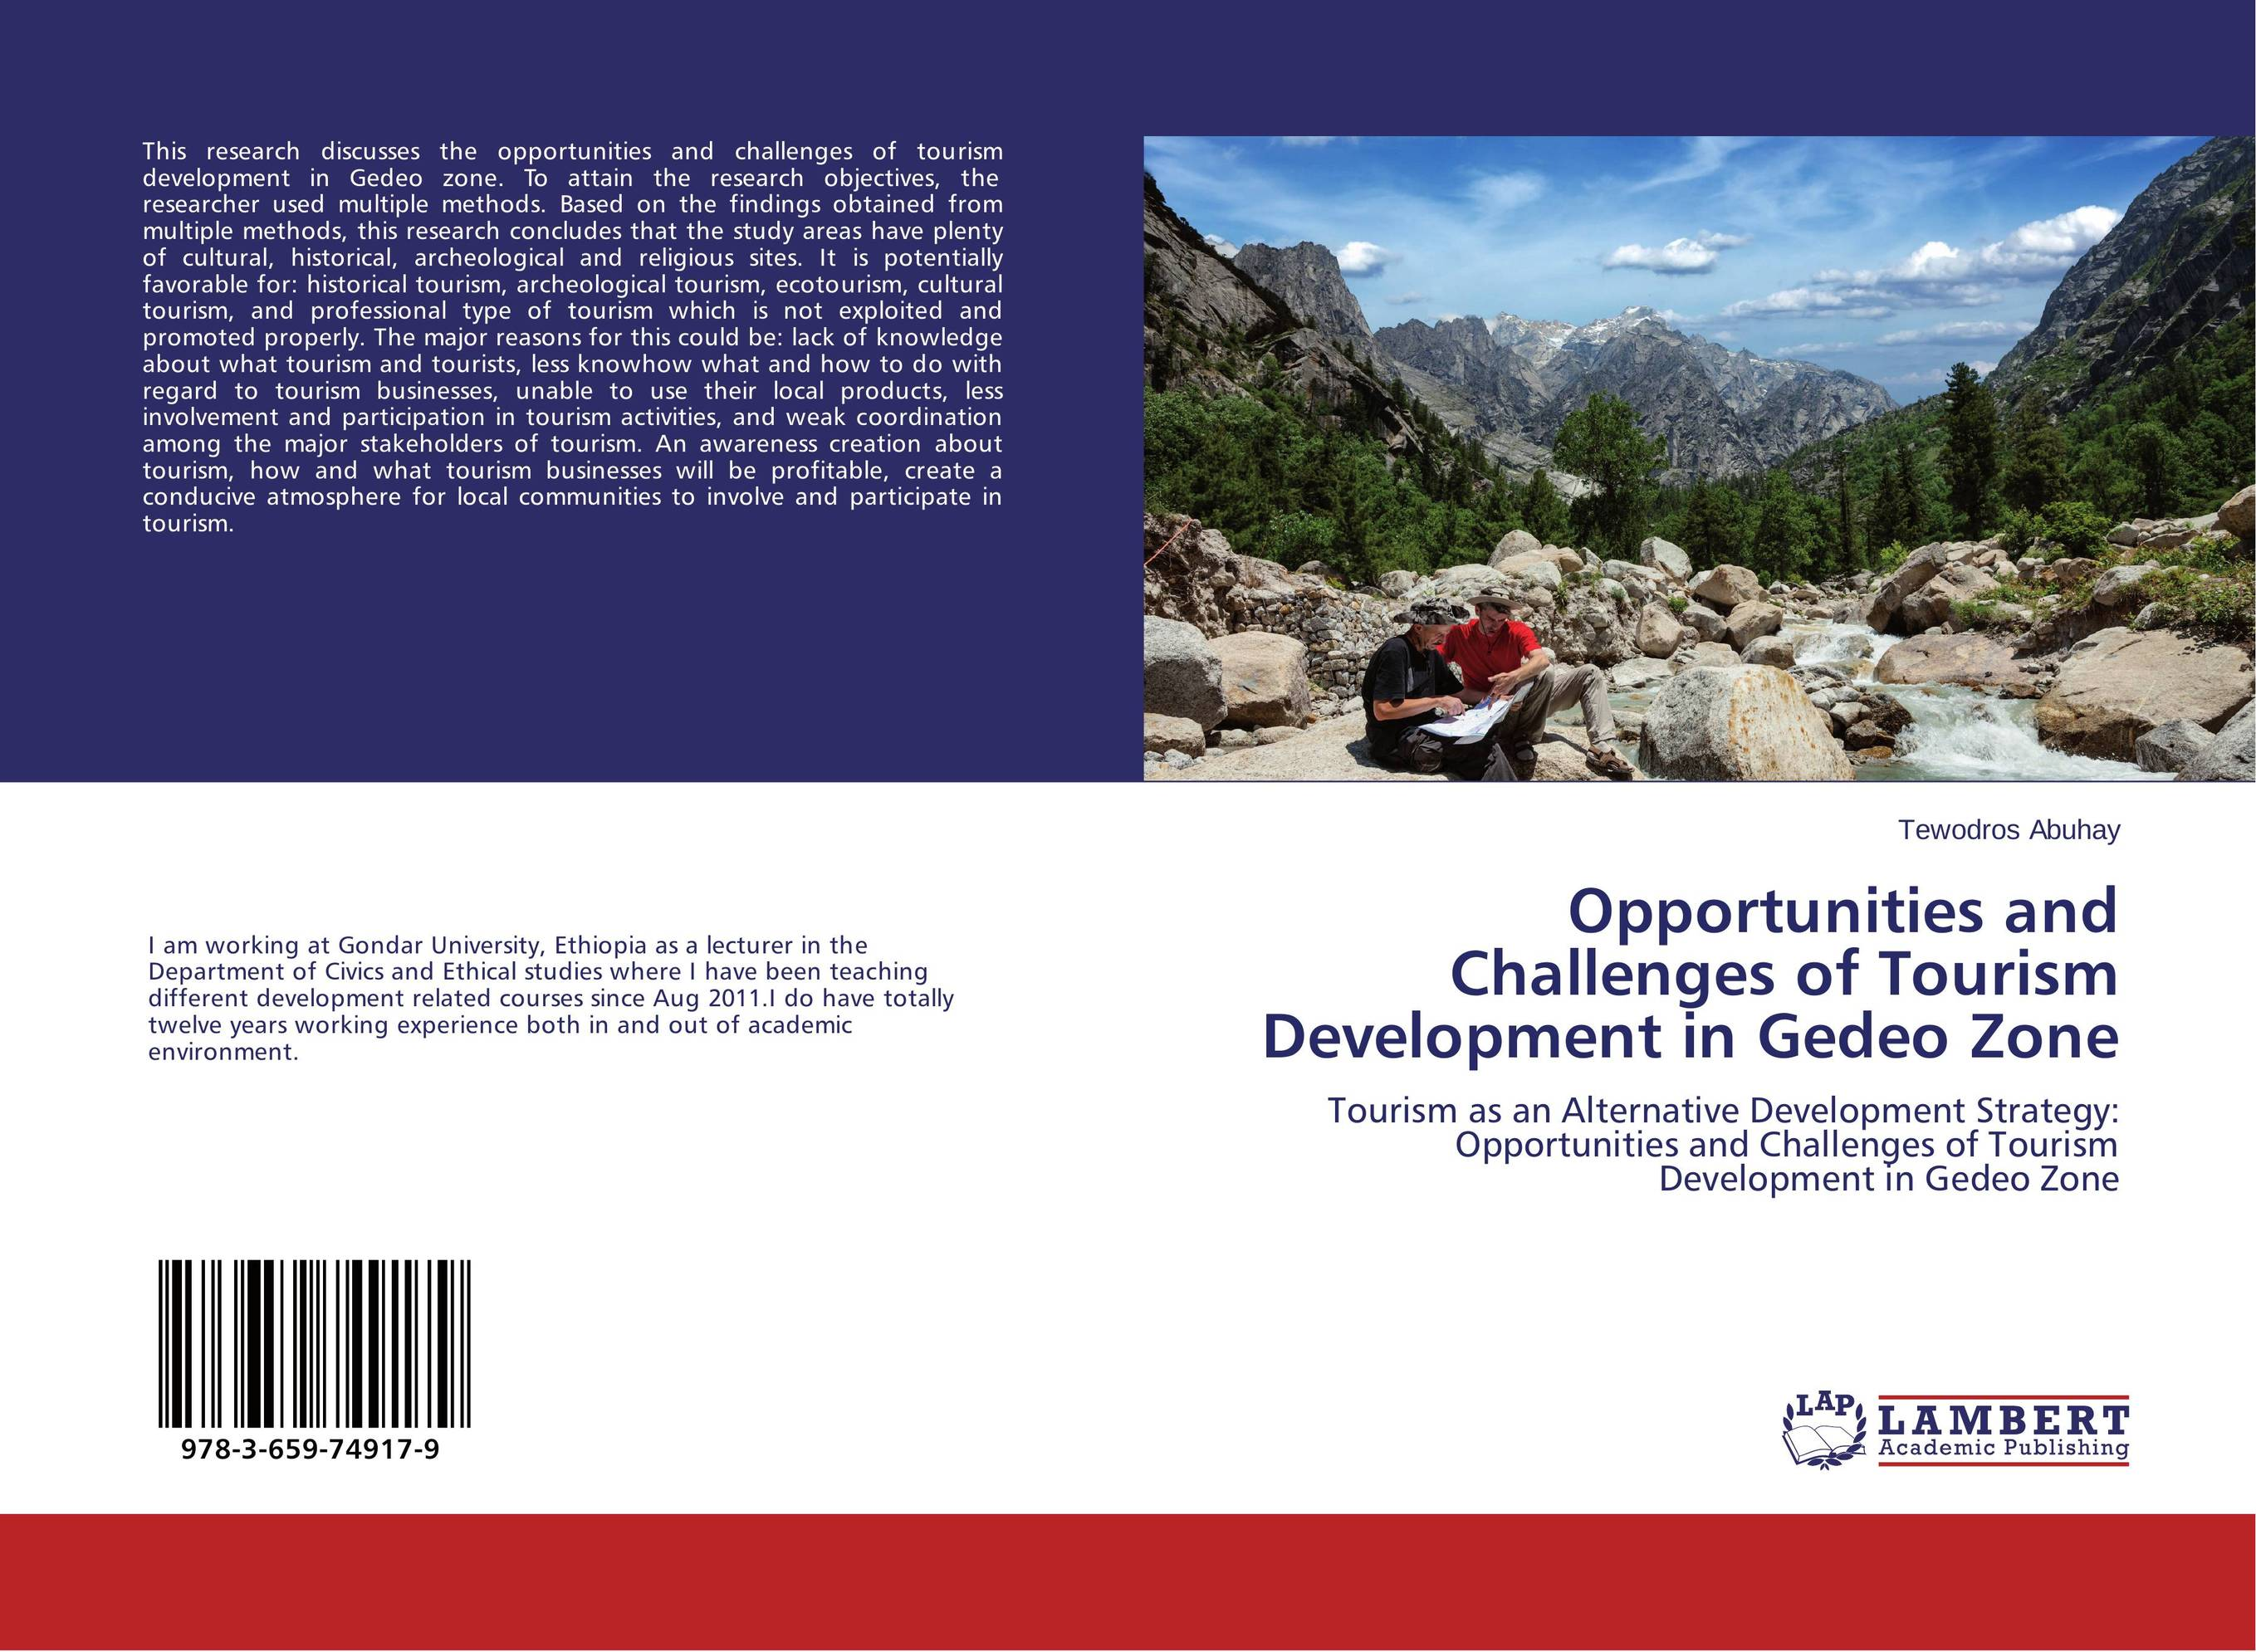 Opportunities and Challenges of Tourism Development in Gedeo Zone tourism development challenges in central and eastern europe